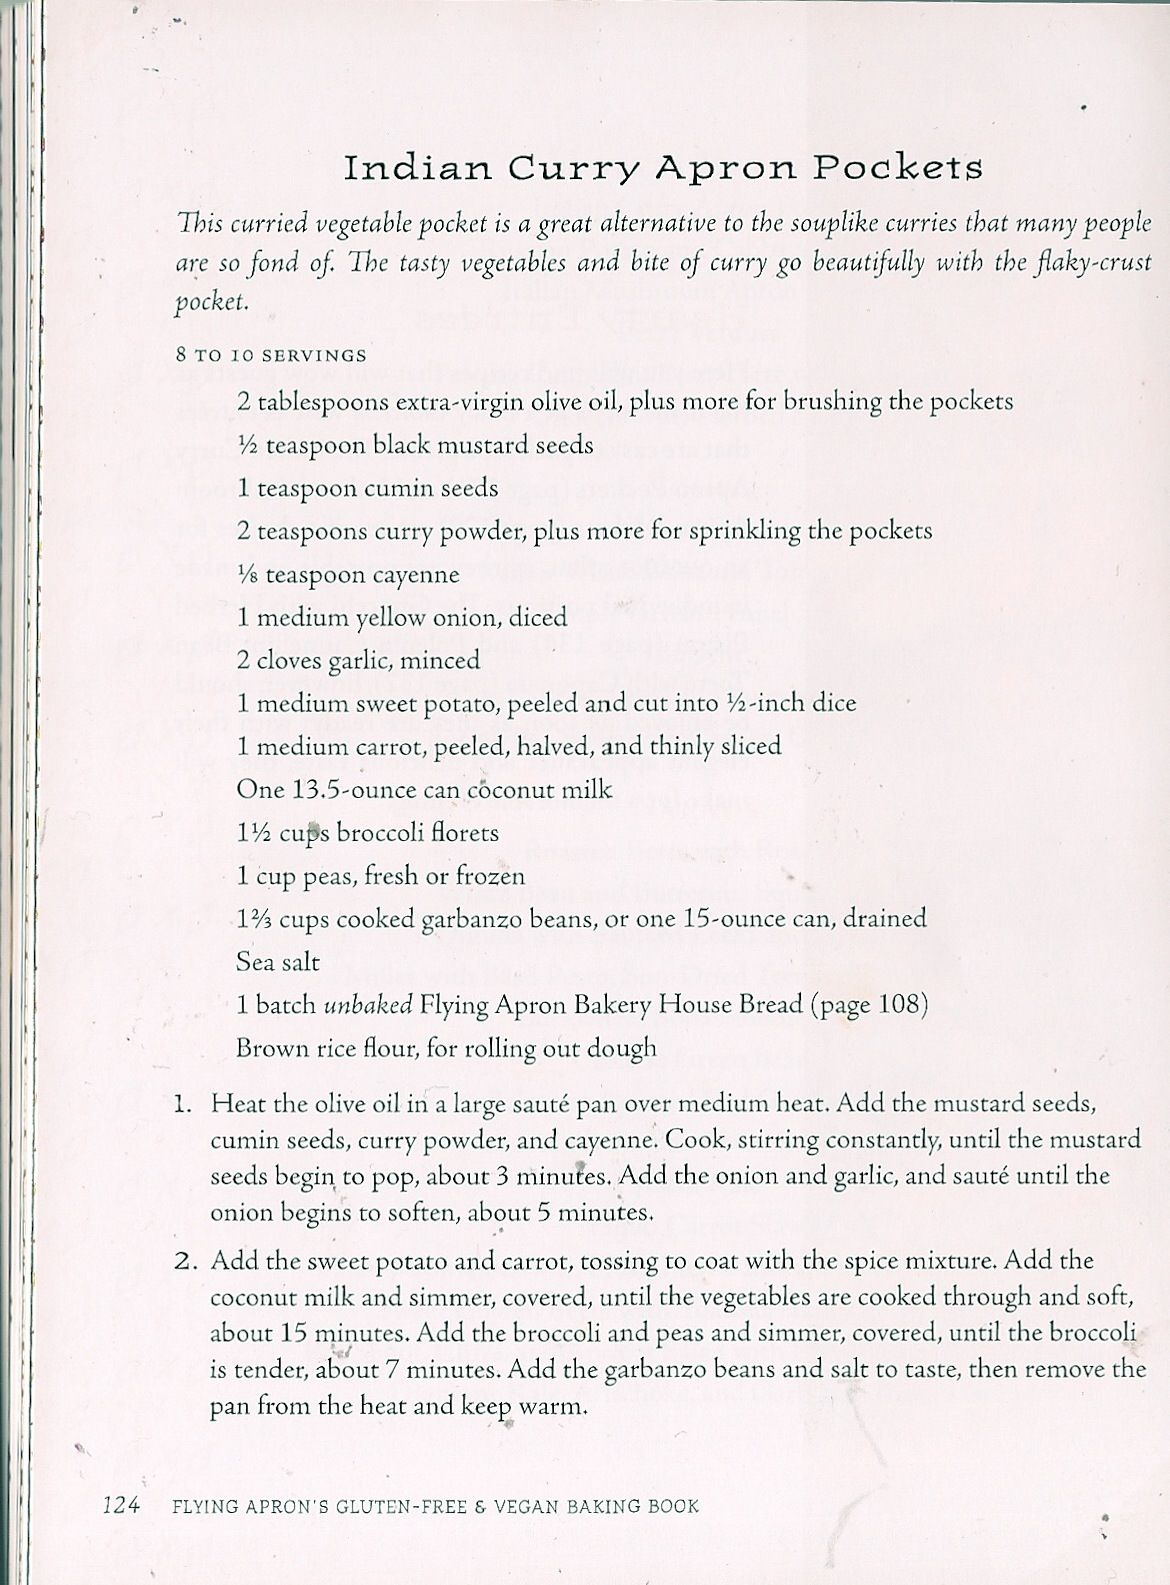 White apron gluten free